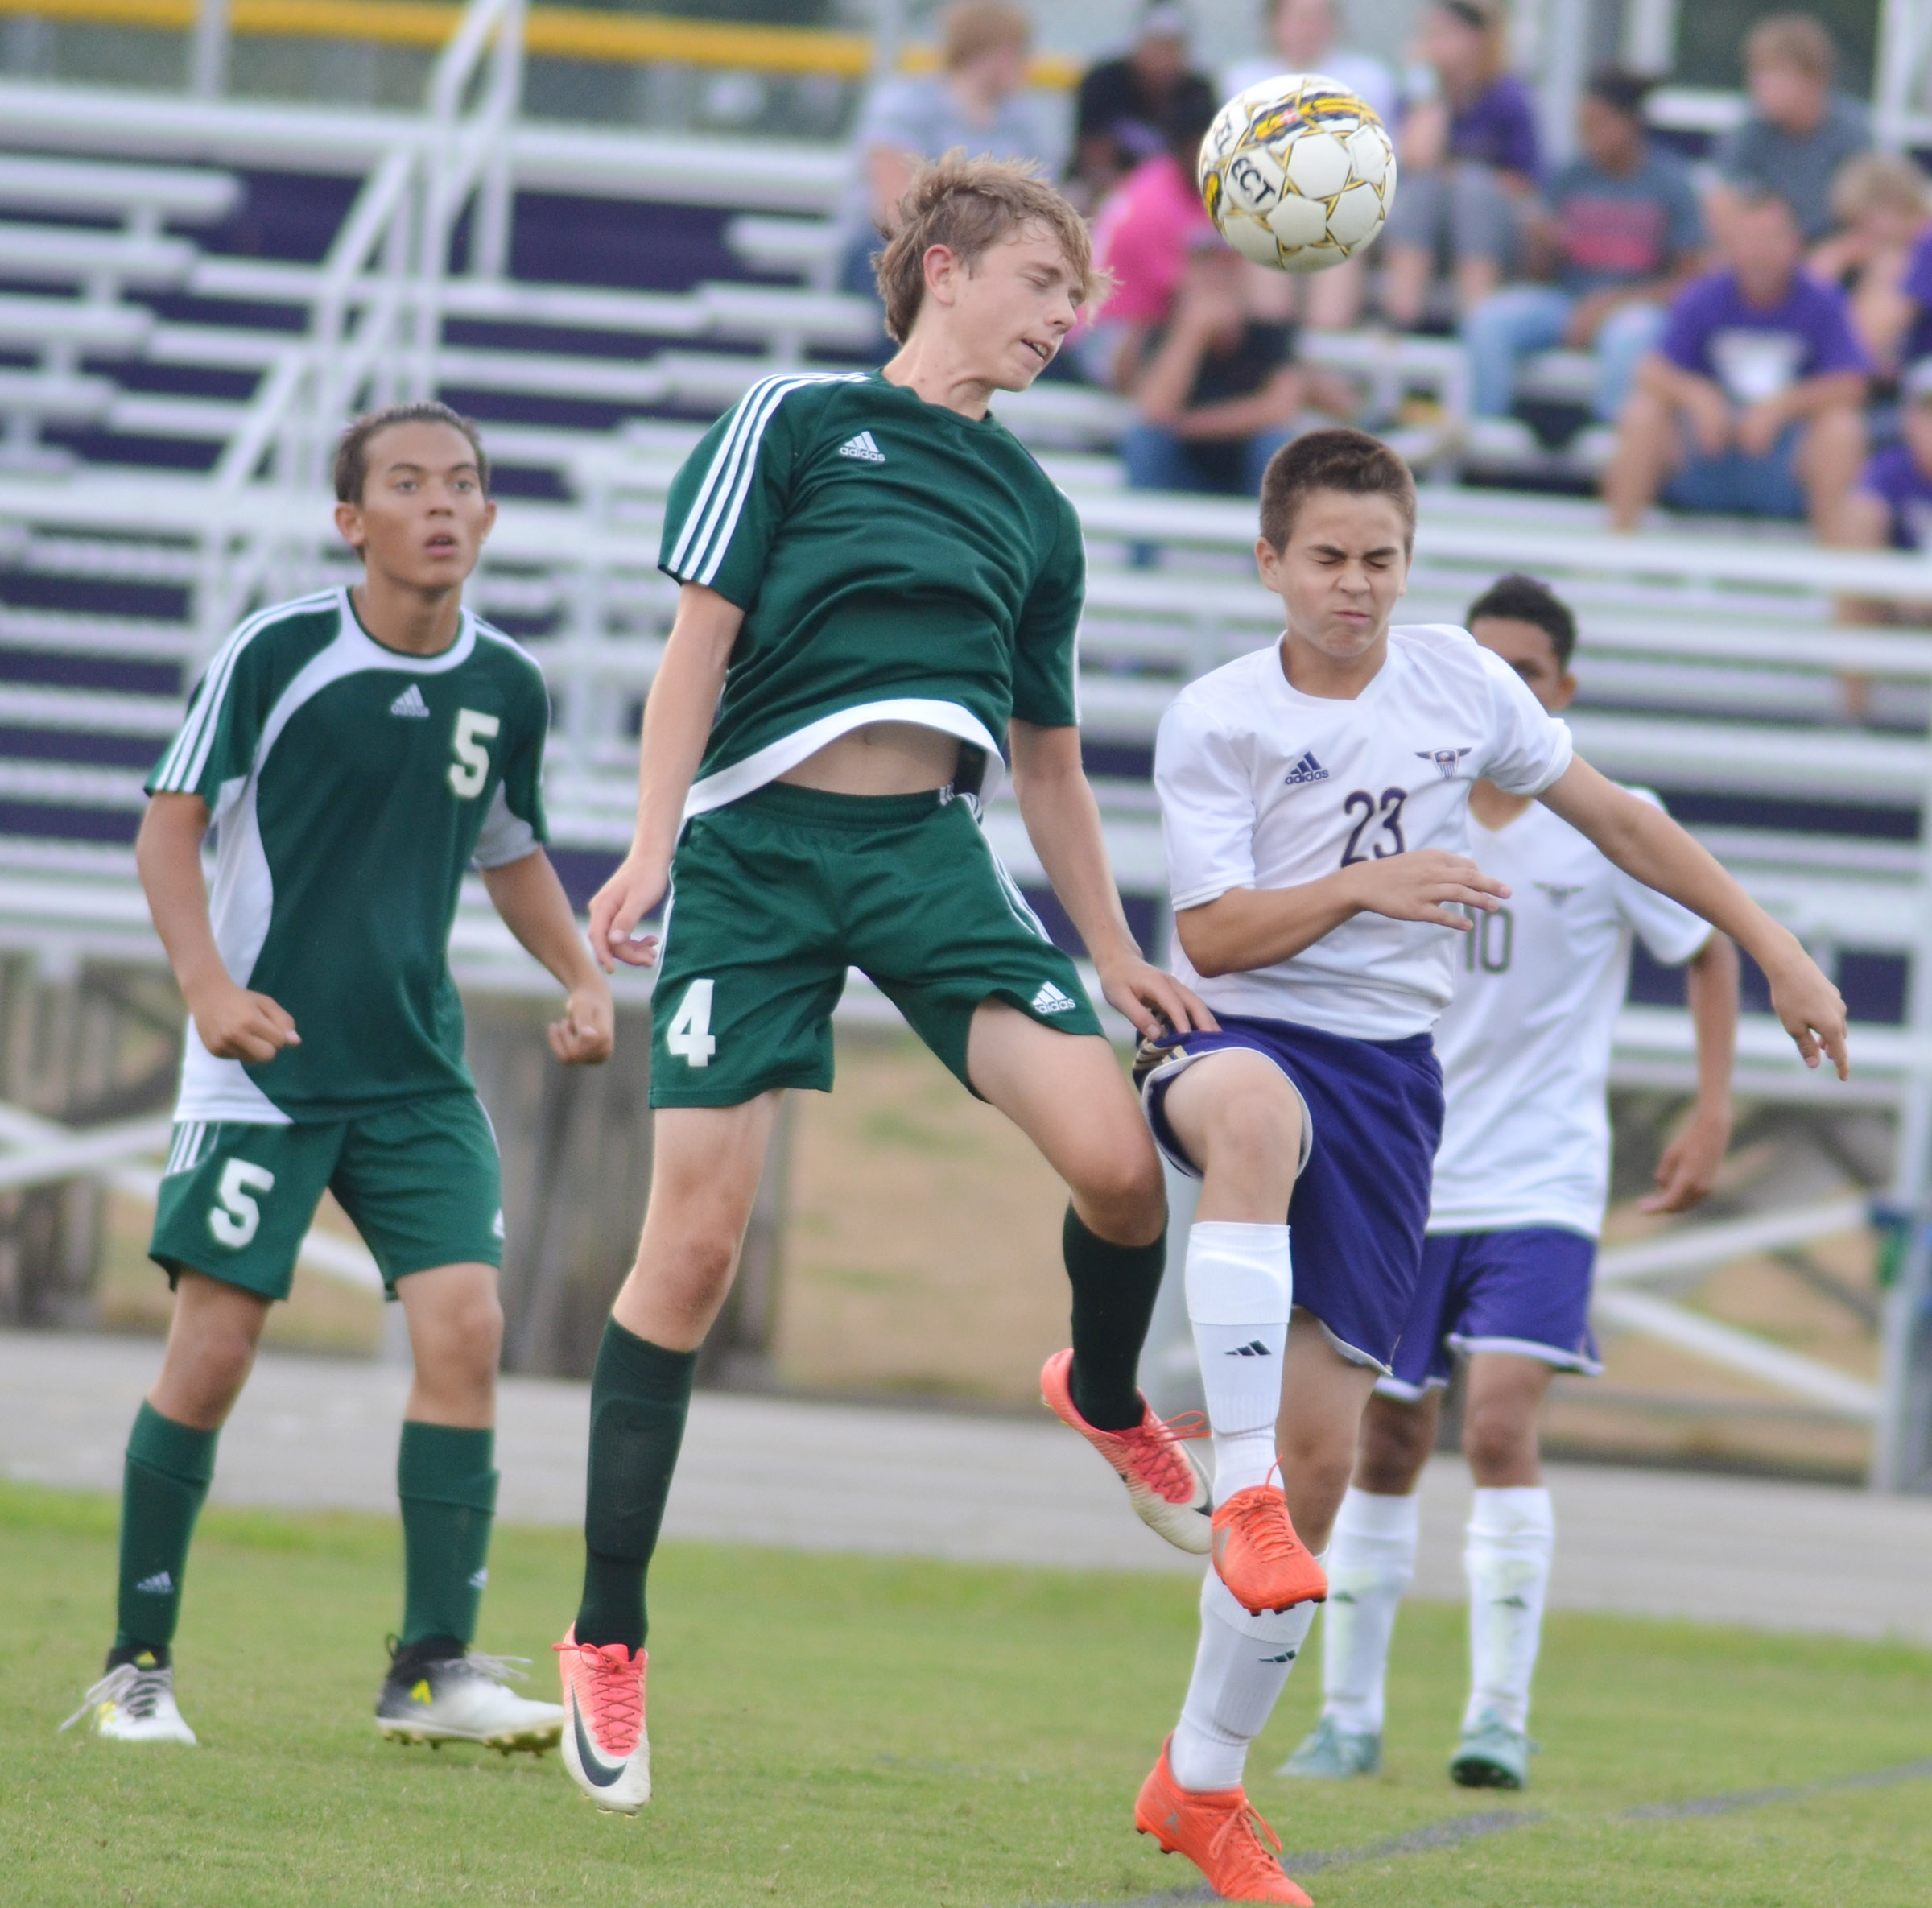 CHS freshman Clark Kidwell winces as the ball comes toward him.